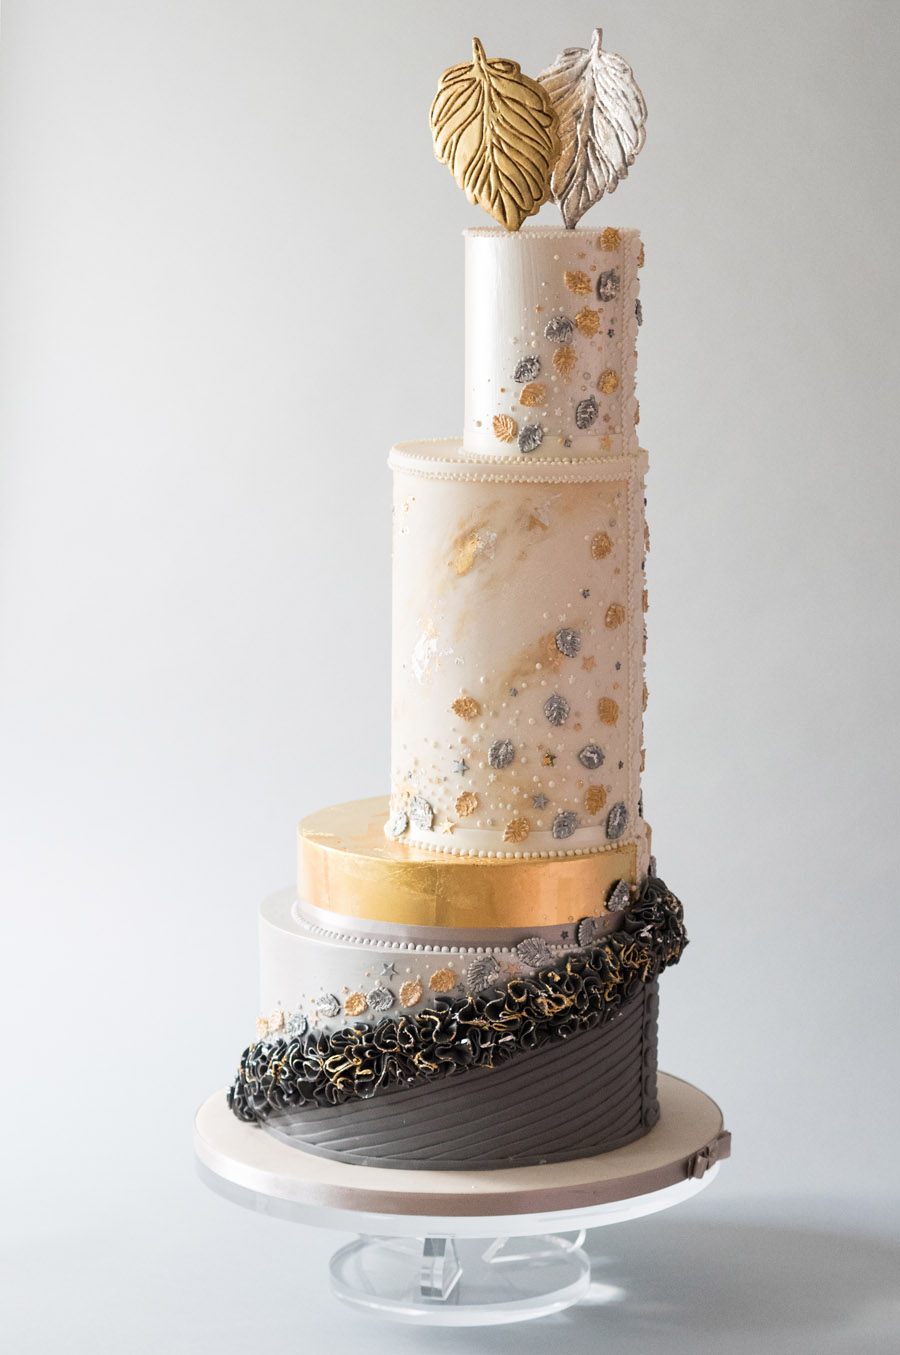 Beautiful wedding cakes by The Frostery - trends and ideas for 2019 (4)